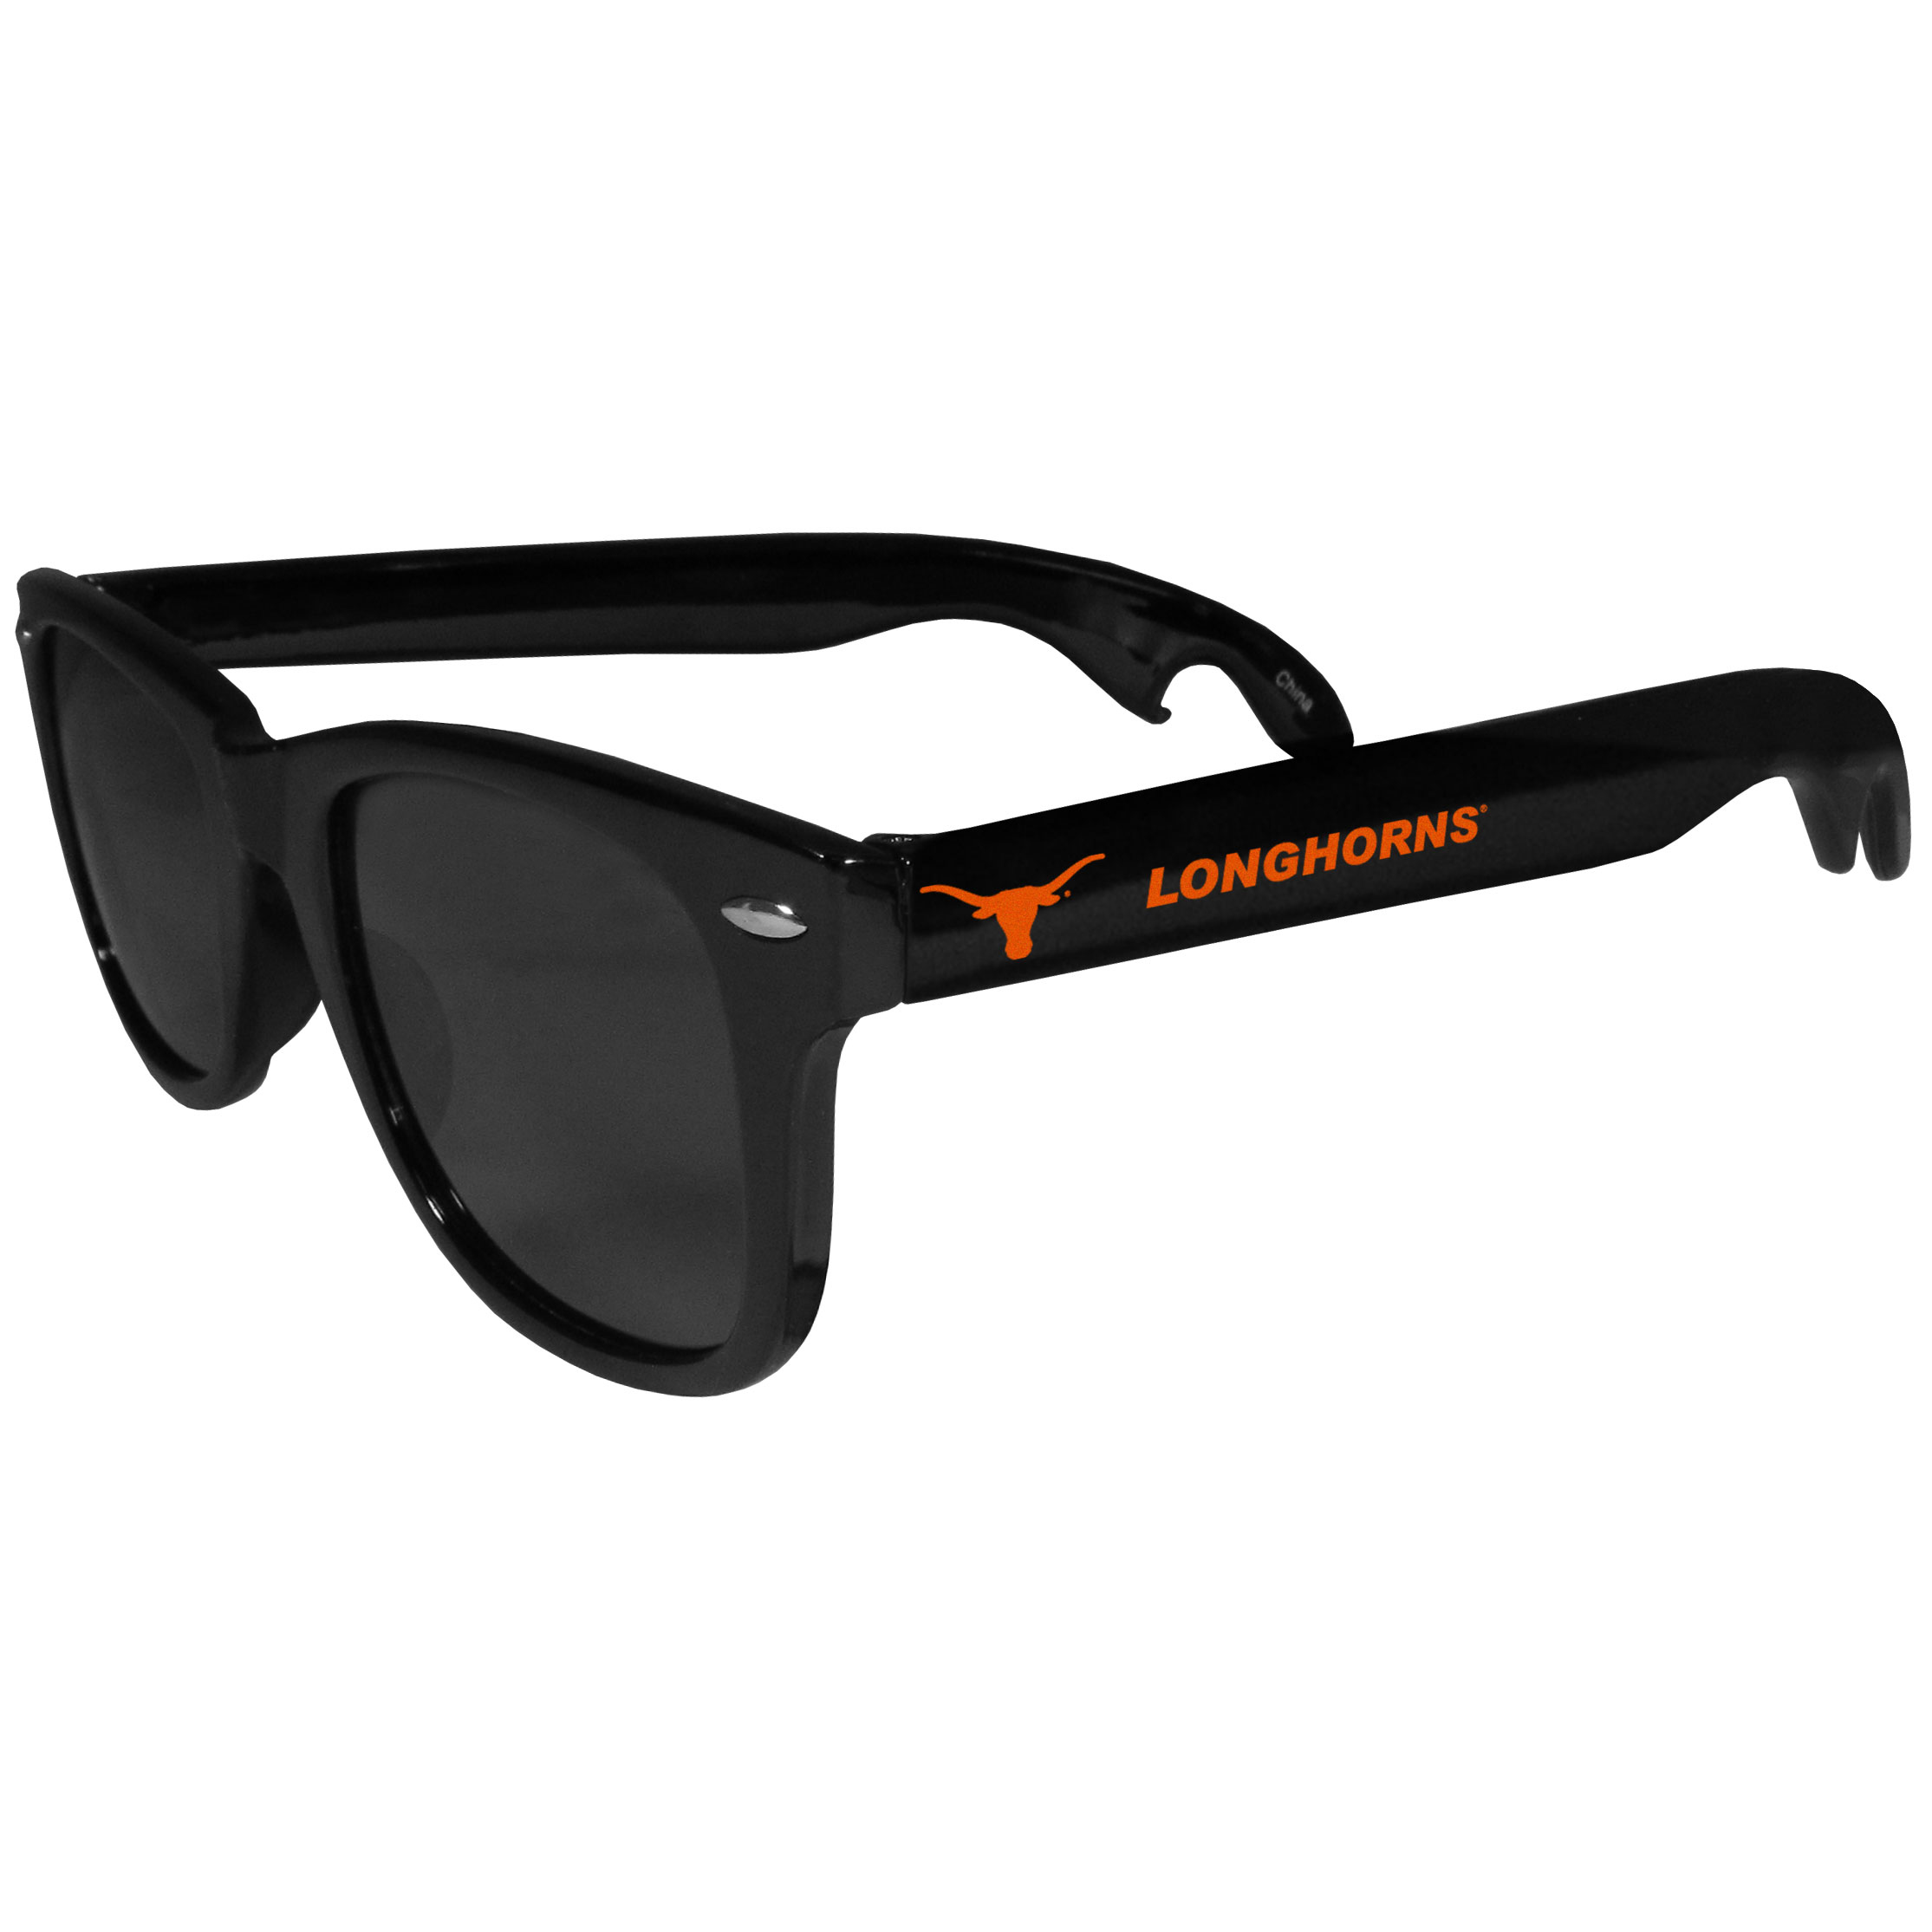 Texas Longhorns Beachfarer Bottle Opener Sunglasses - Seriously, these sunglasses open bottles! Keep the party going with these amazing Texas Longhorns bottle opener sunglasses. The stylish retro frames feature team designs on the arms and functional bottle openers on the end of the arms. Whether you are at the beach or having a backyard BBQ on game day, these shades will keep your eyes protected with 100% UVA/UVB protection and keep you hydrated with the handy bottle opener arms.